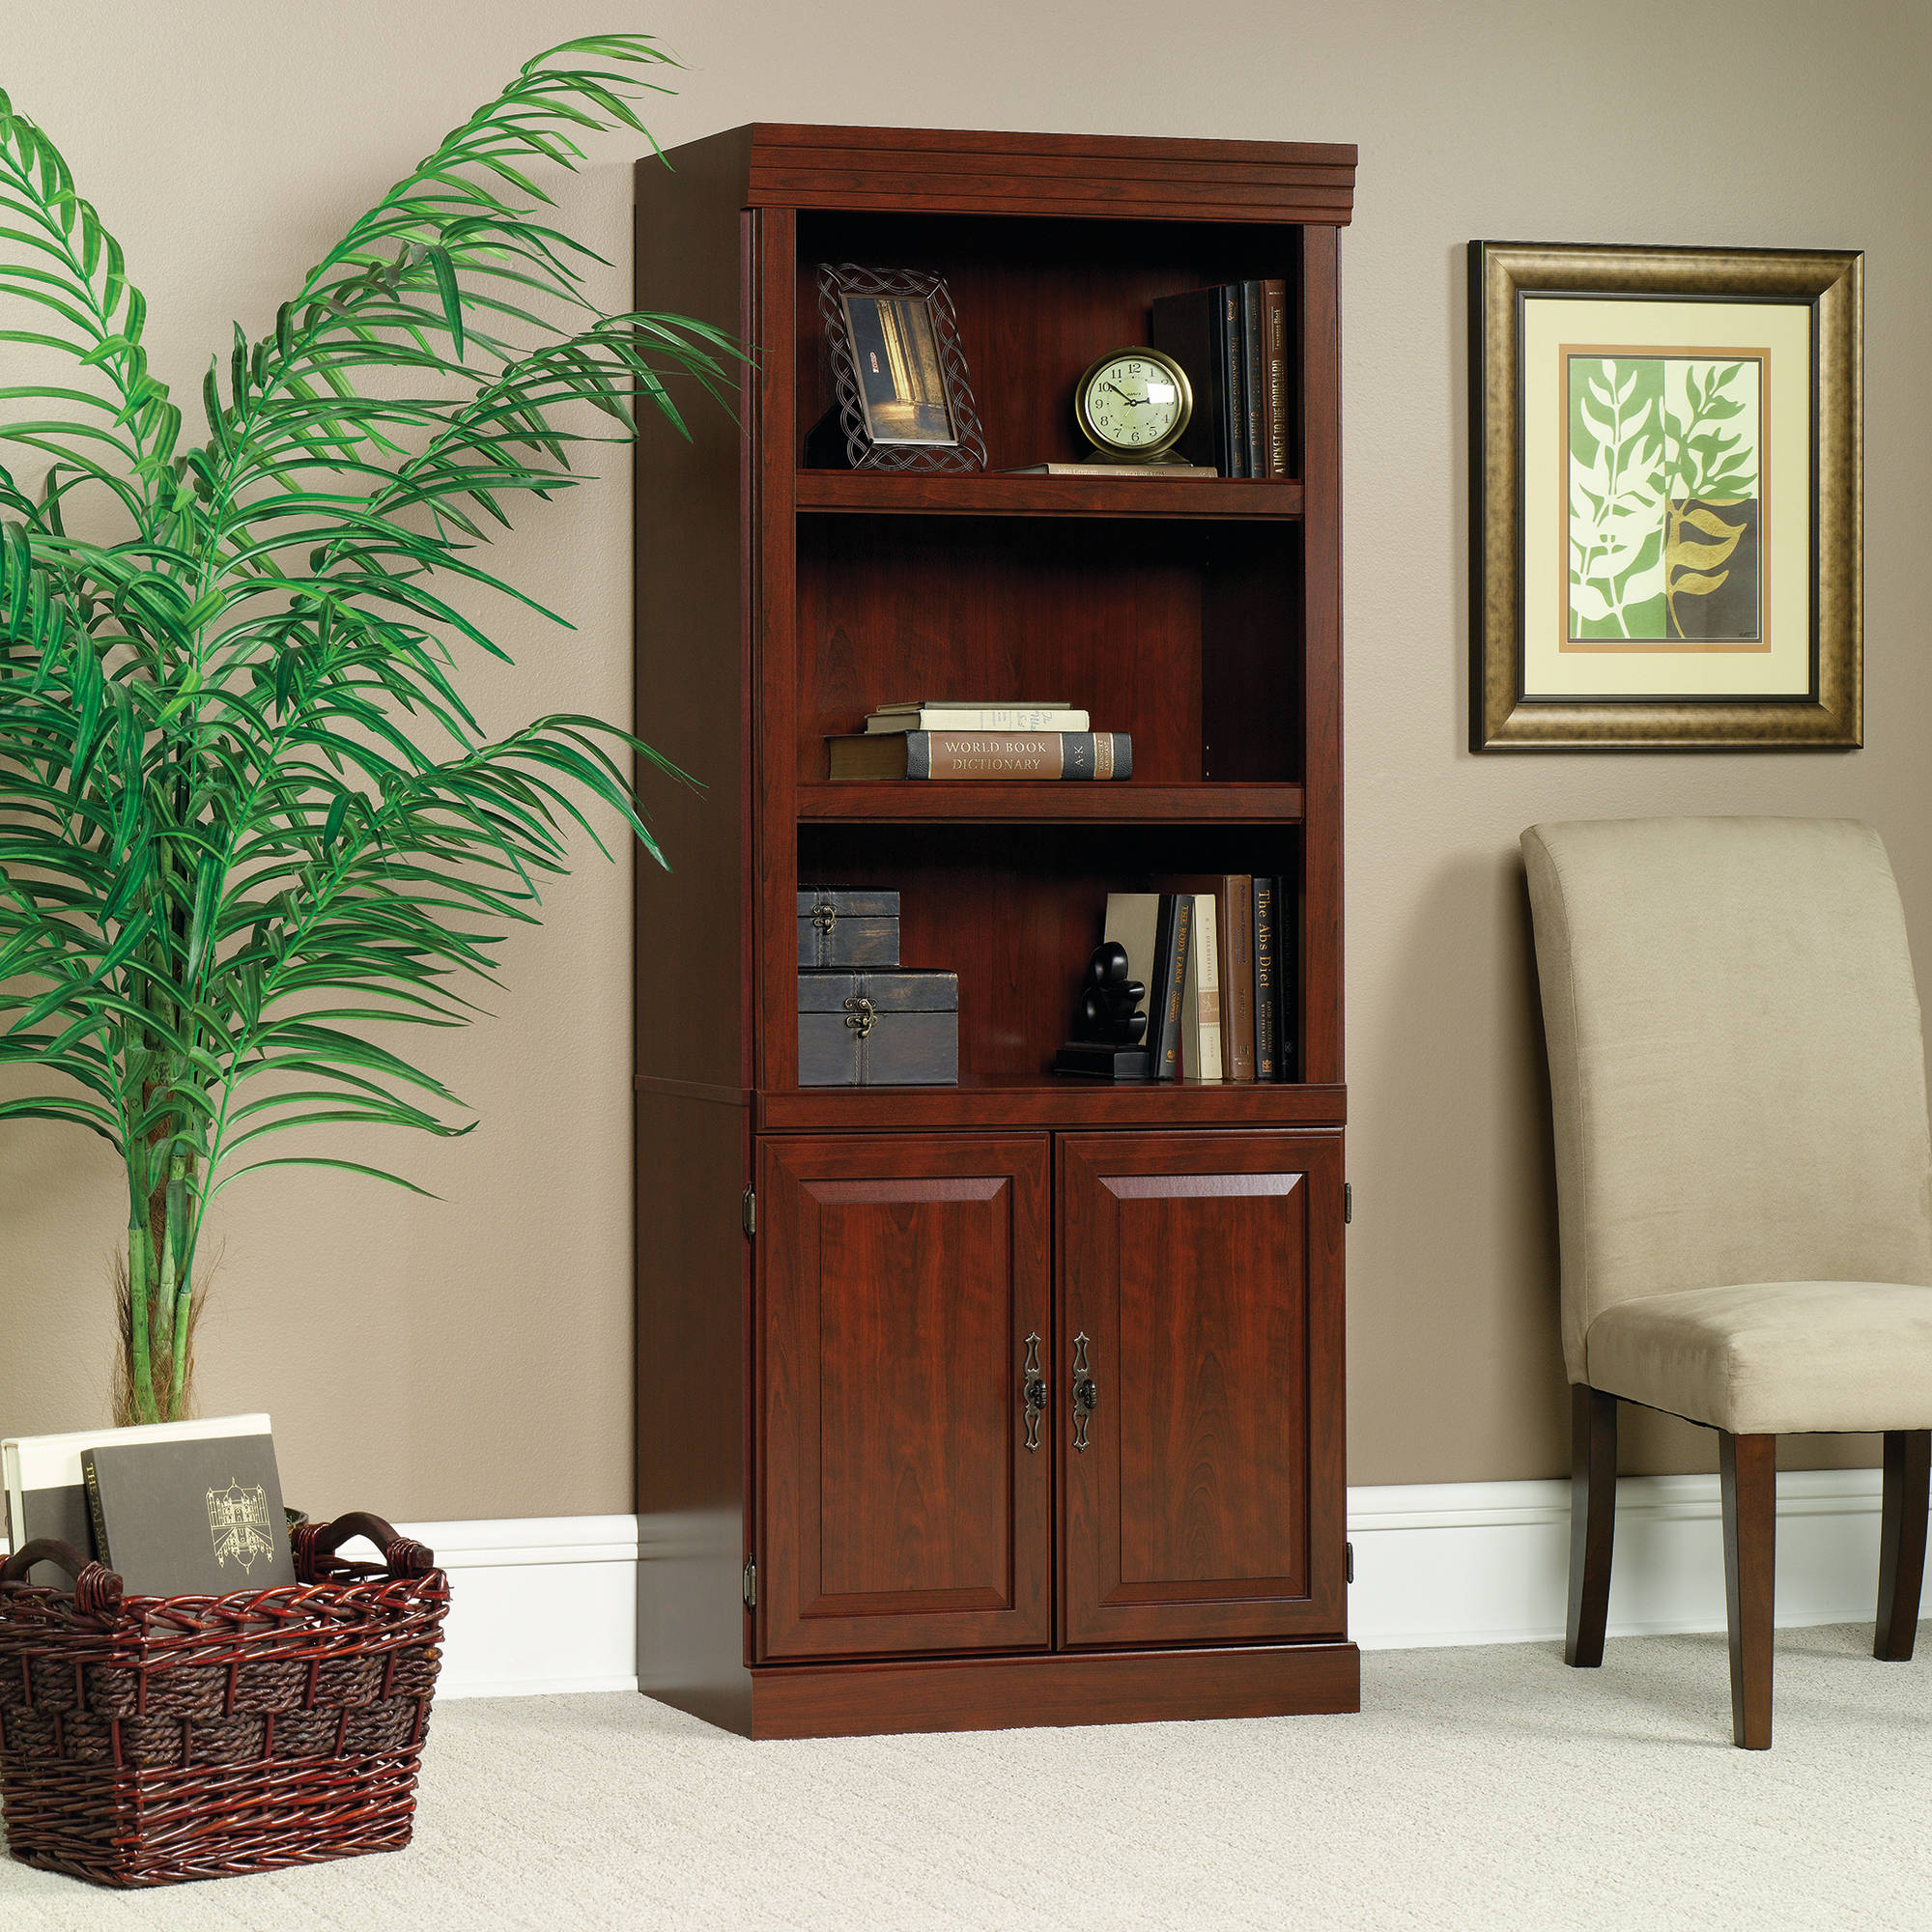 shipping storage sliding walnut free door bookshelf today bookcase product garden manchester safavieh home overstock